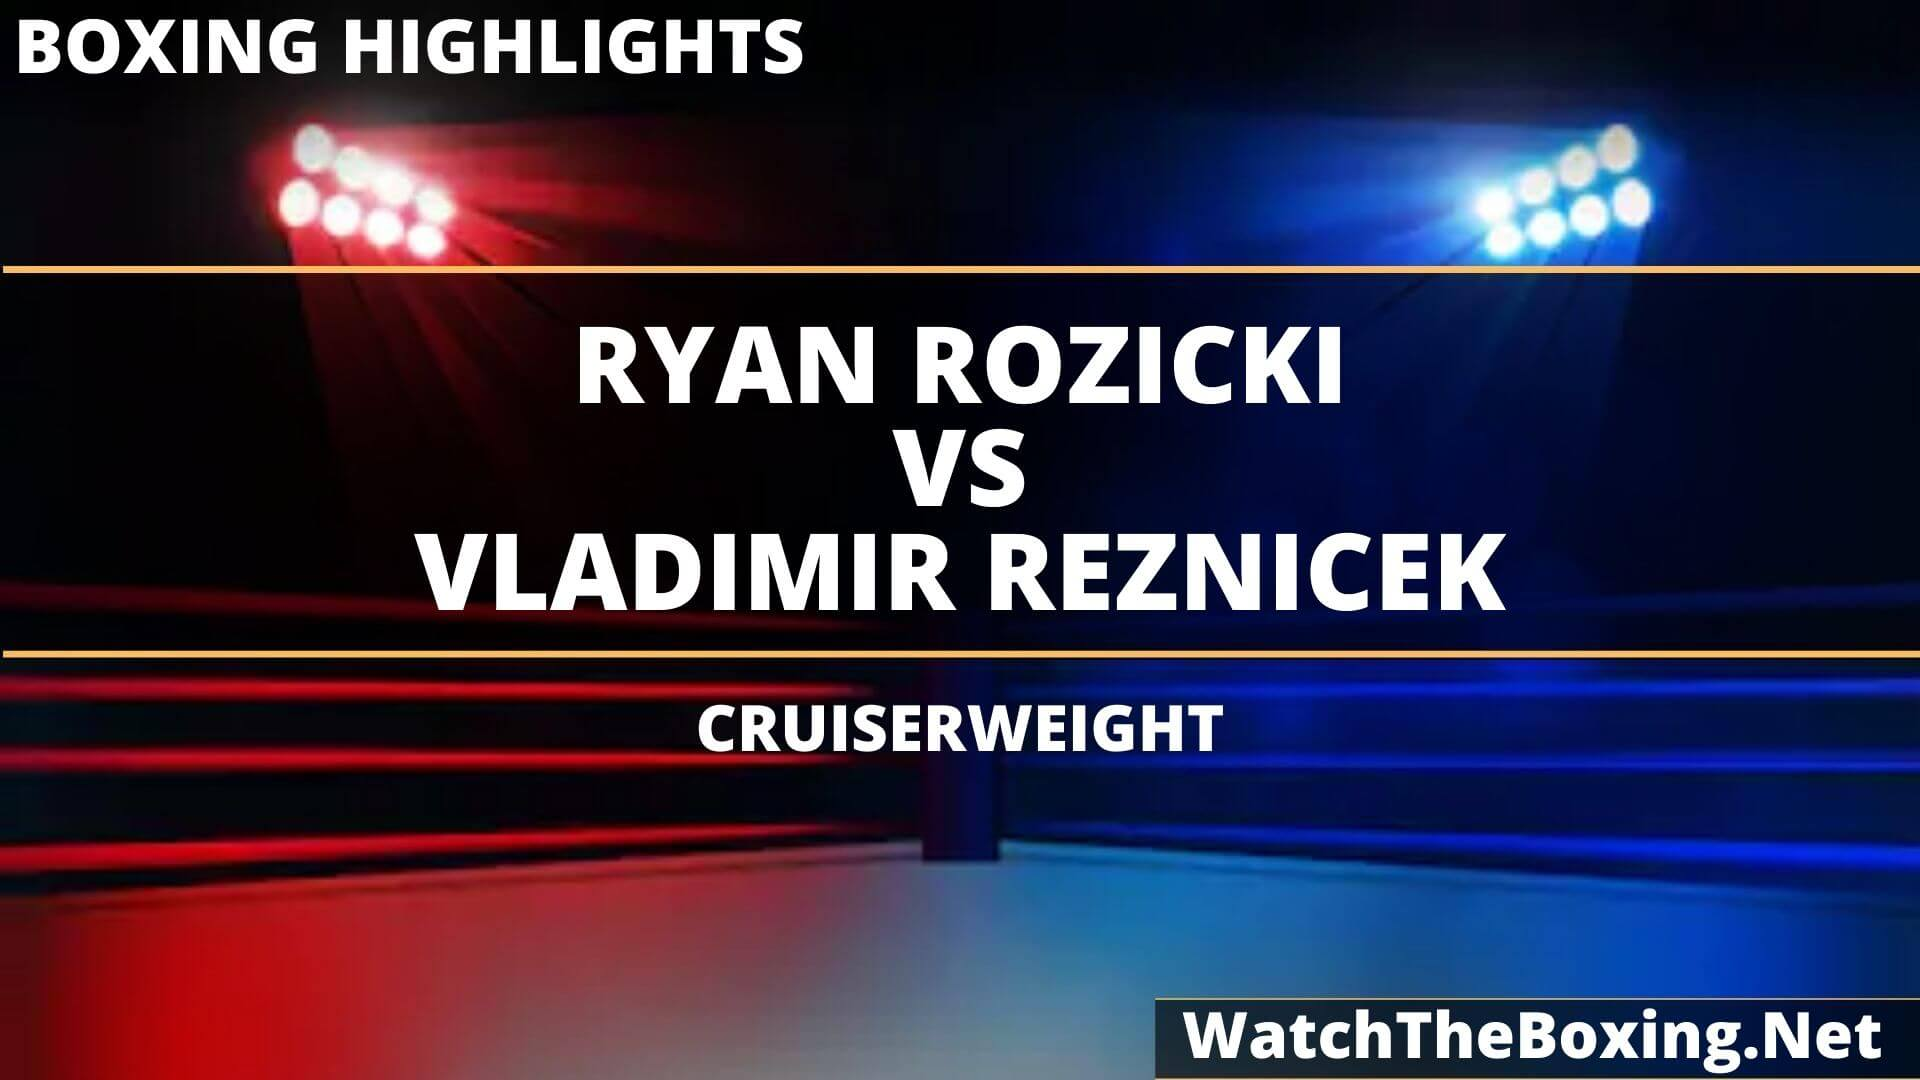 Ryan Rozicki Vs Vladimir Reznicek Highlights 2020